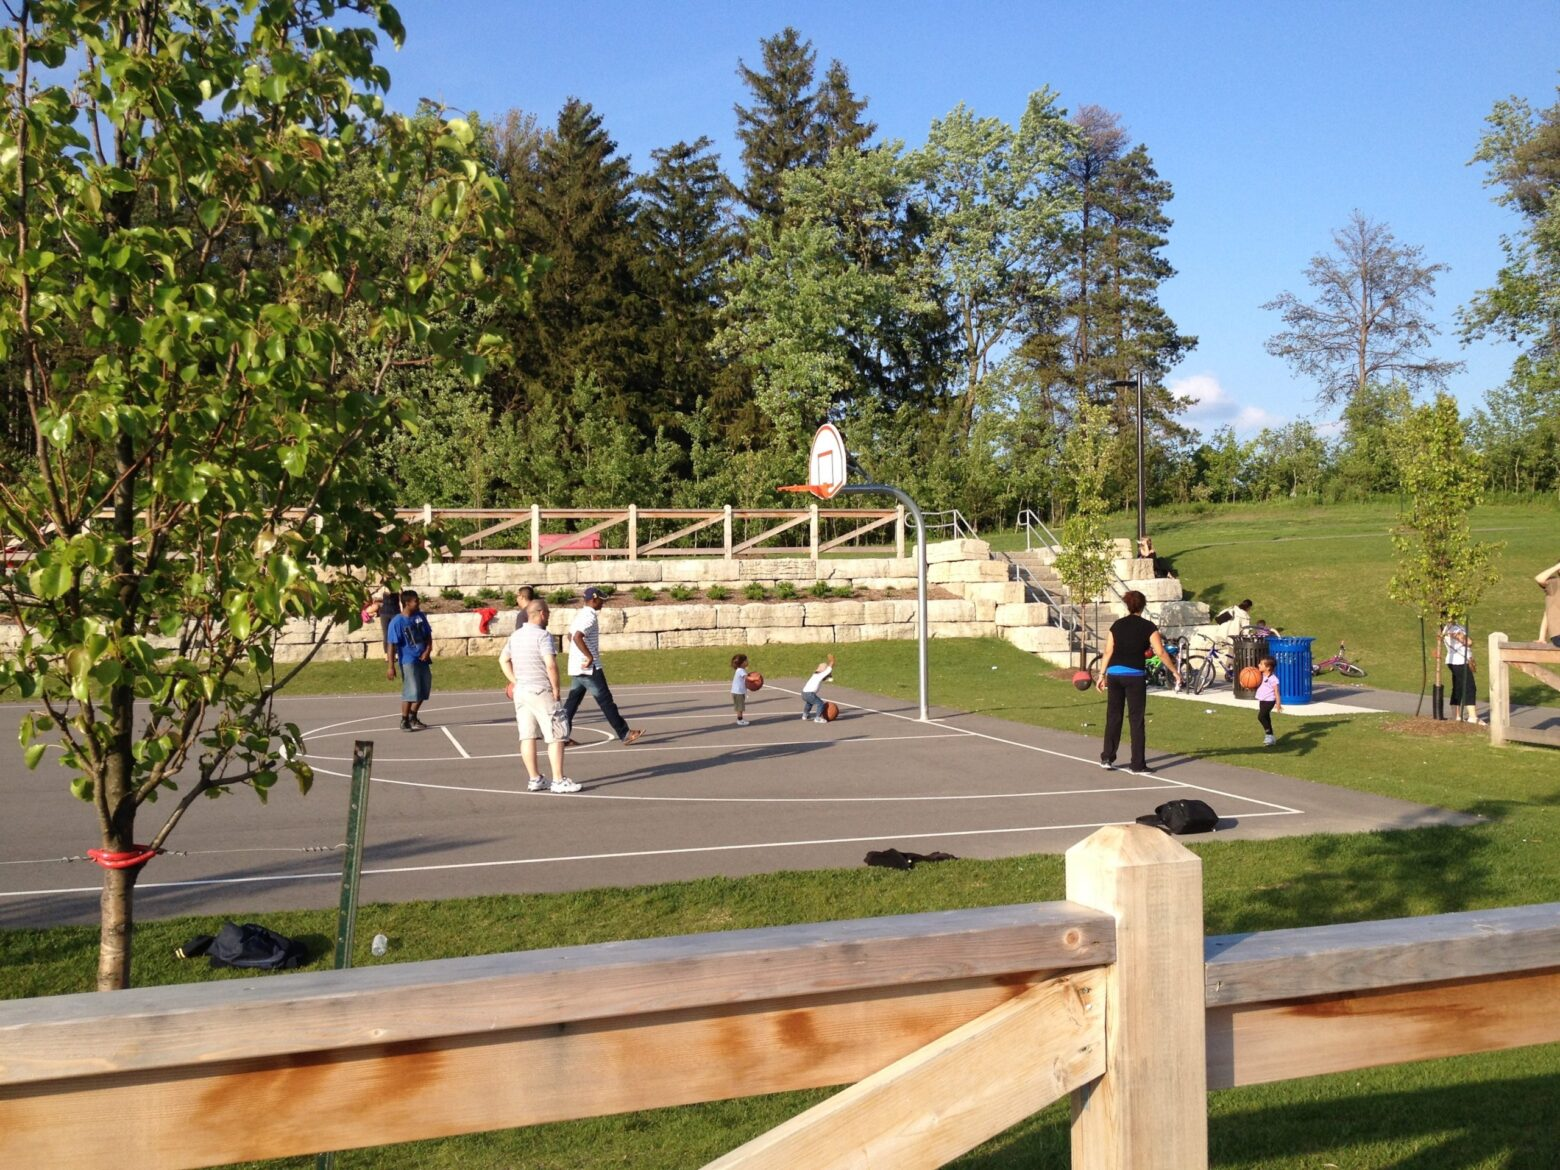 People playing basketball in a court.